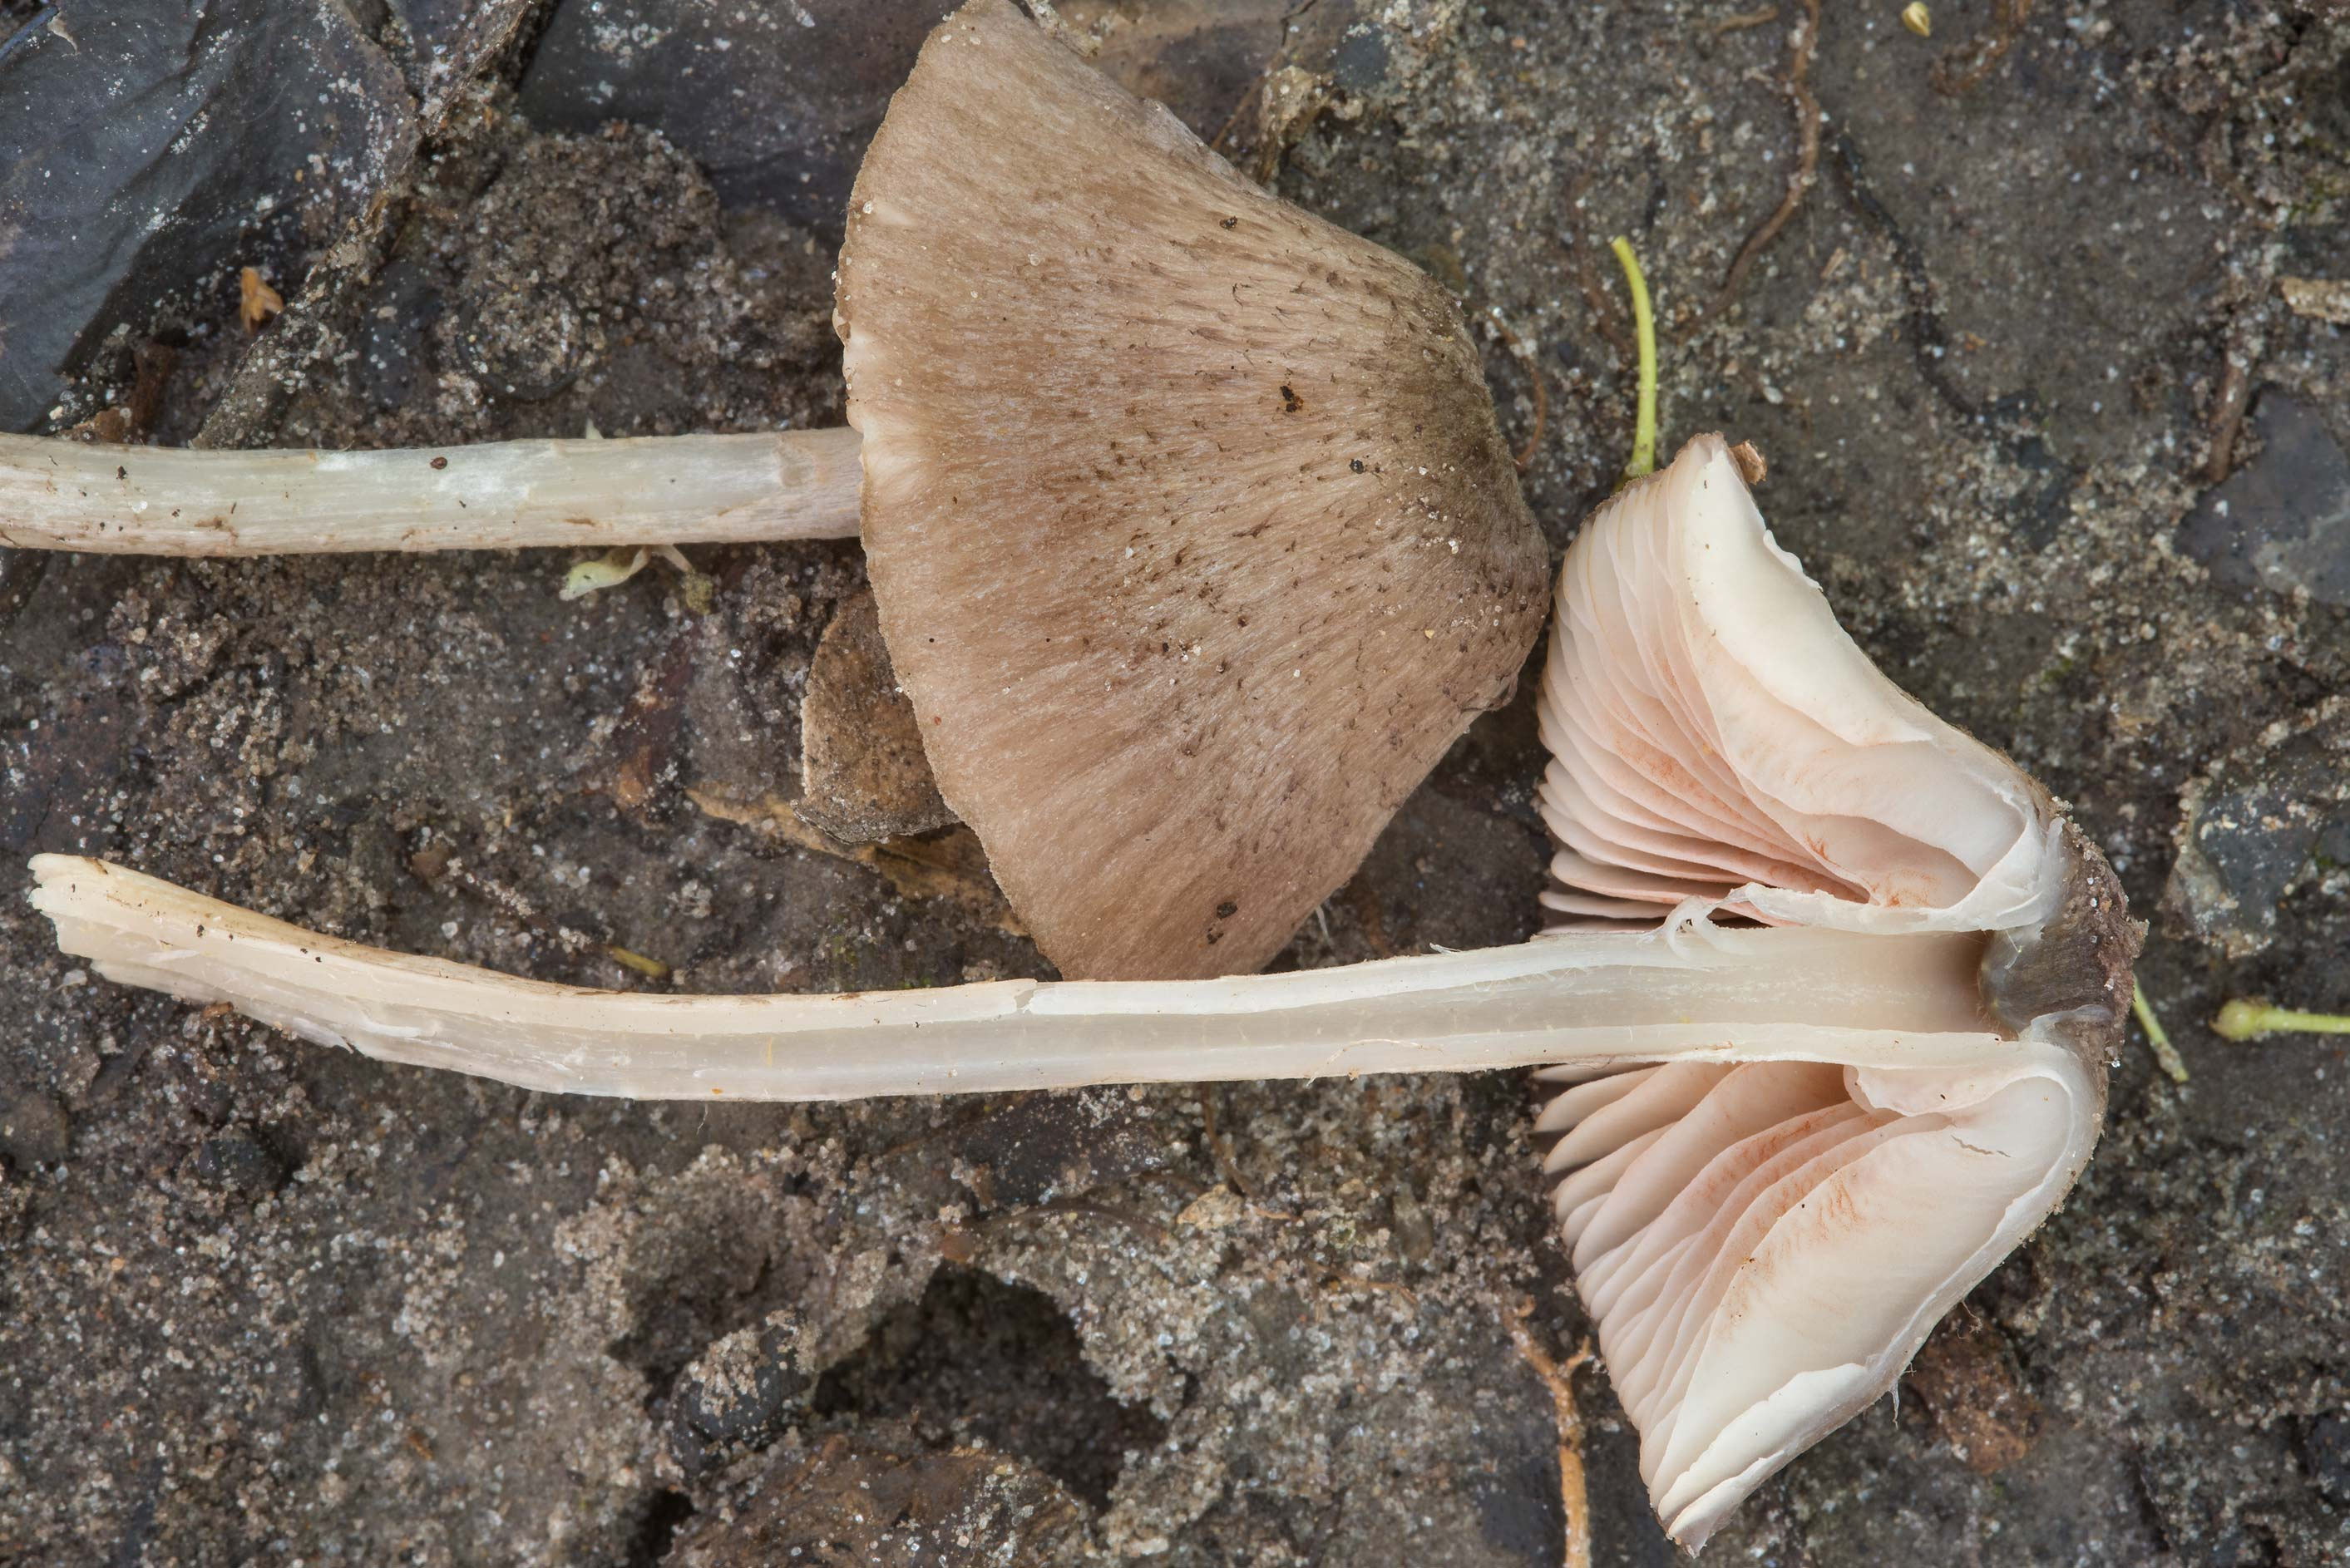 Dissected pinkgill (Entoloma) mushroom in Hensel Park. College Station, Texas